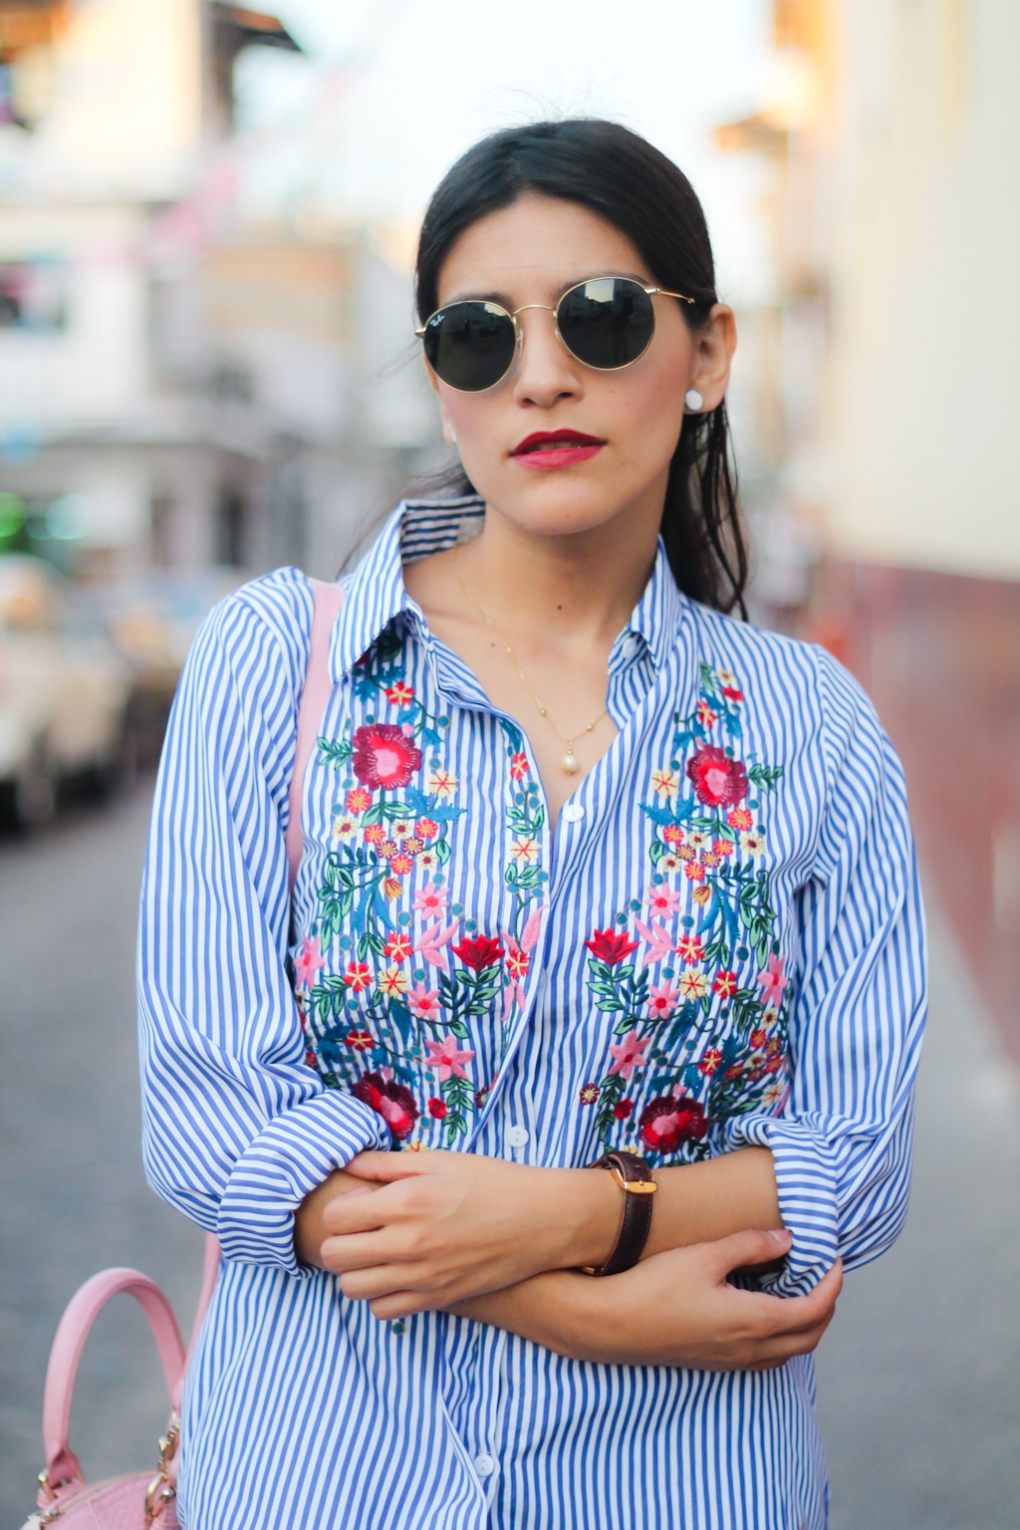 blogger-mexicana-she-petite-dulce-partida-mexican-blogger-dulcepart-chicwish-flowers-shirt-stripes-shirt-casual-look-nike-cortez-9.jpg